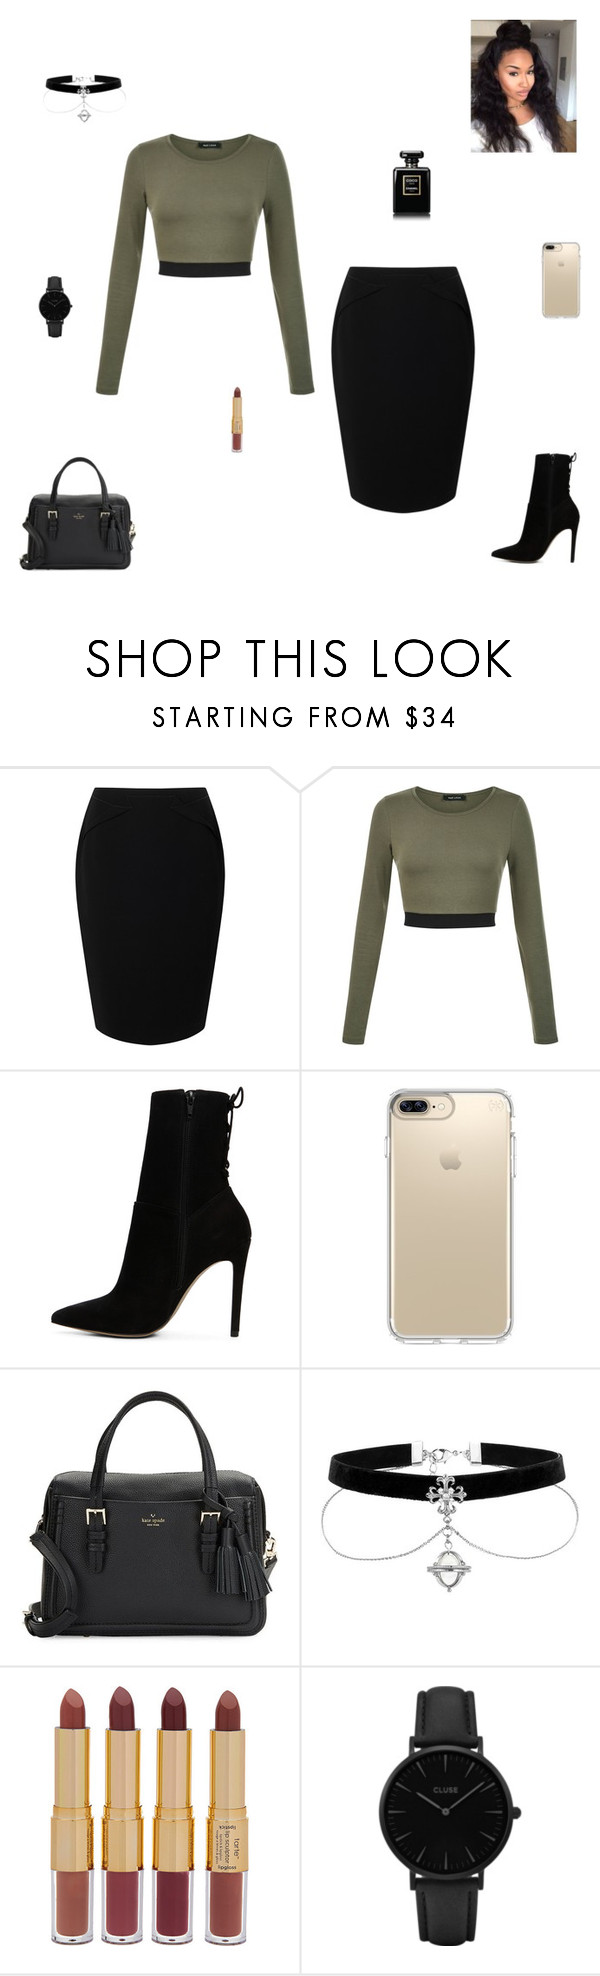 """""""work"""" by synclairel ❤ liked on Polyvore featuring Jacques Vert, ALDO, Speck, Kate Spade, tarte, CLUSE, Chanel, Winter, cute and casual"""